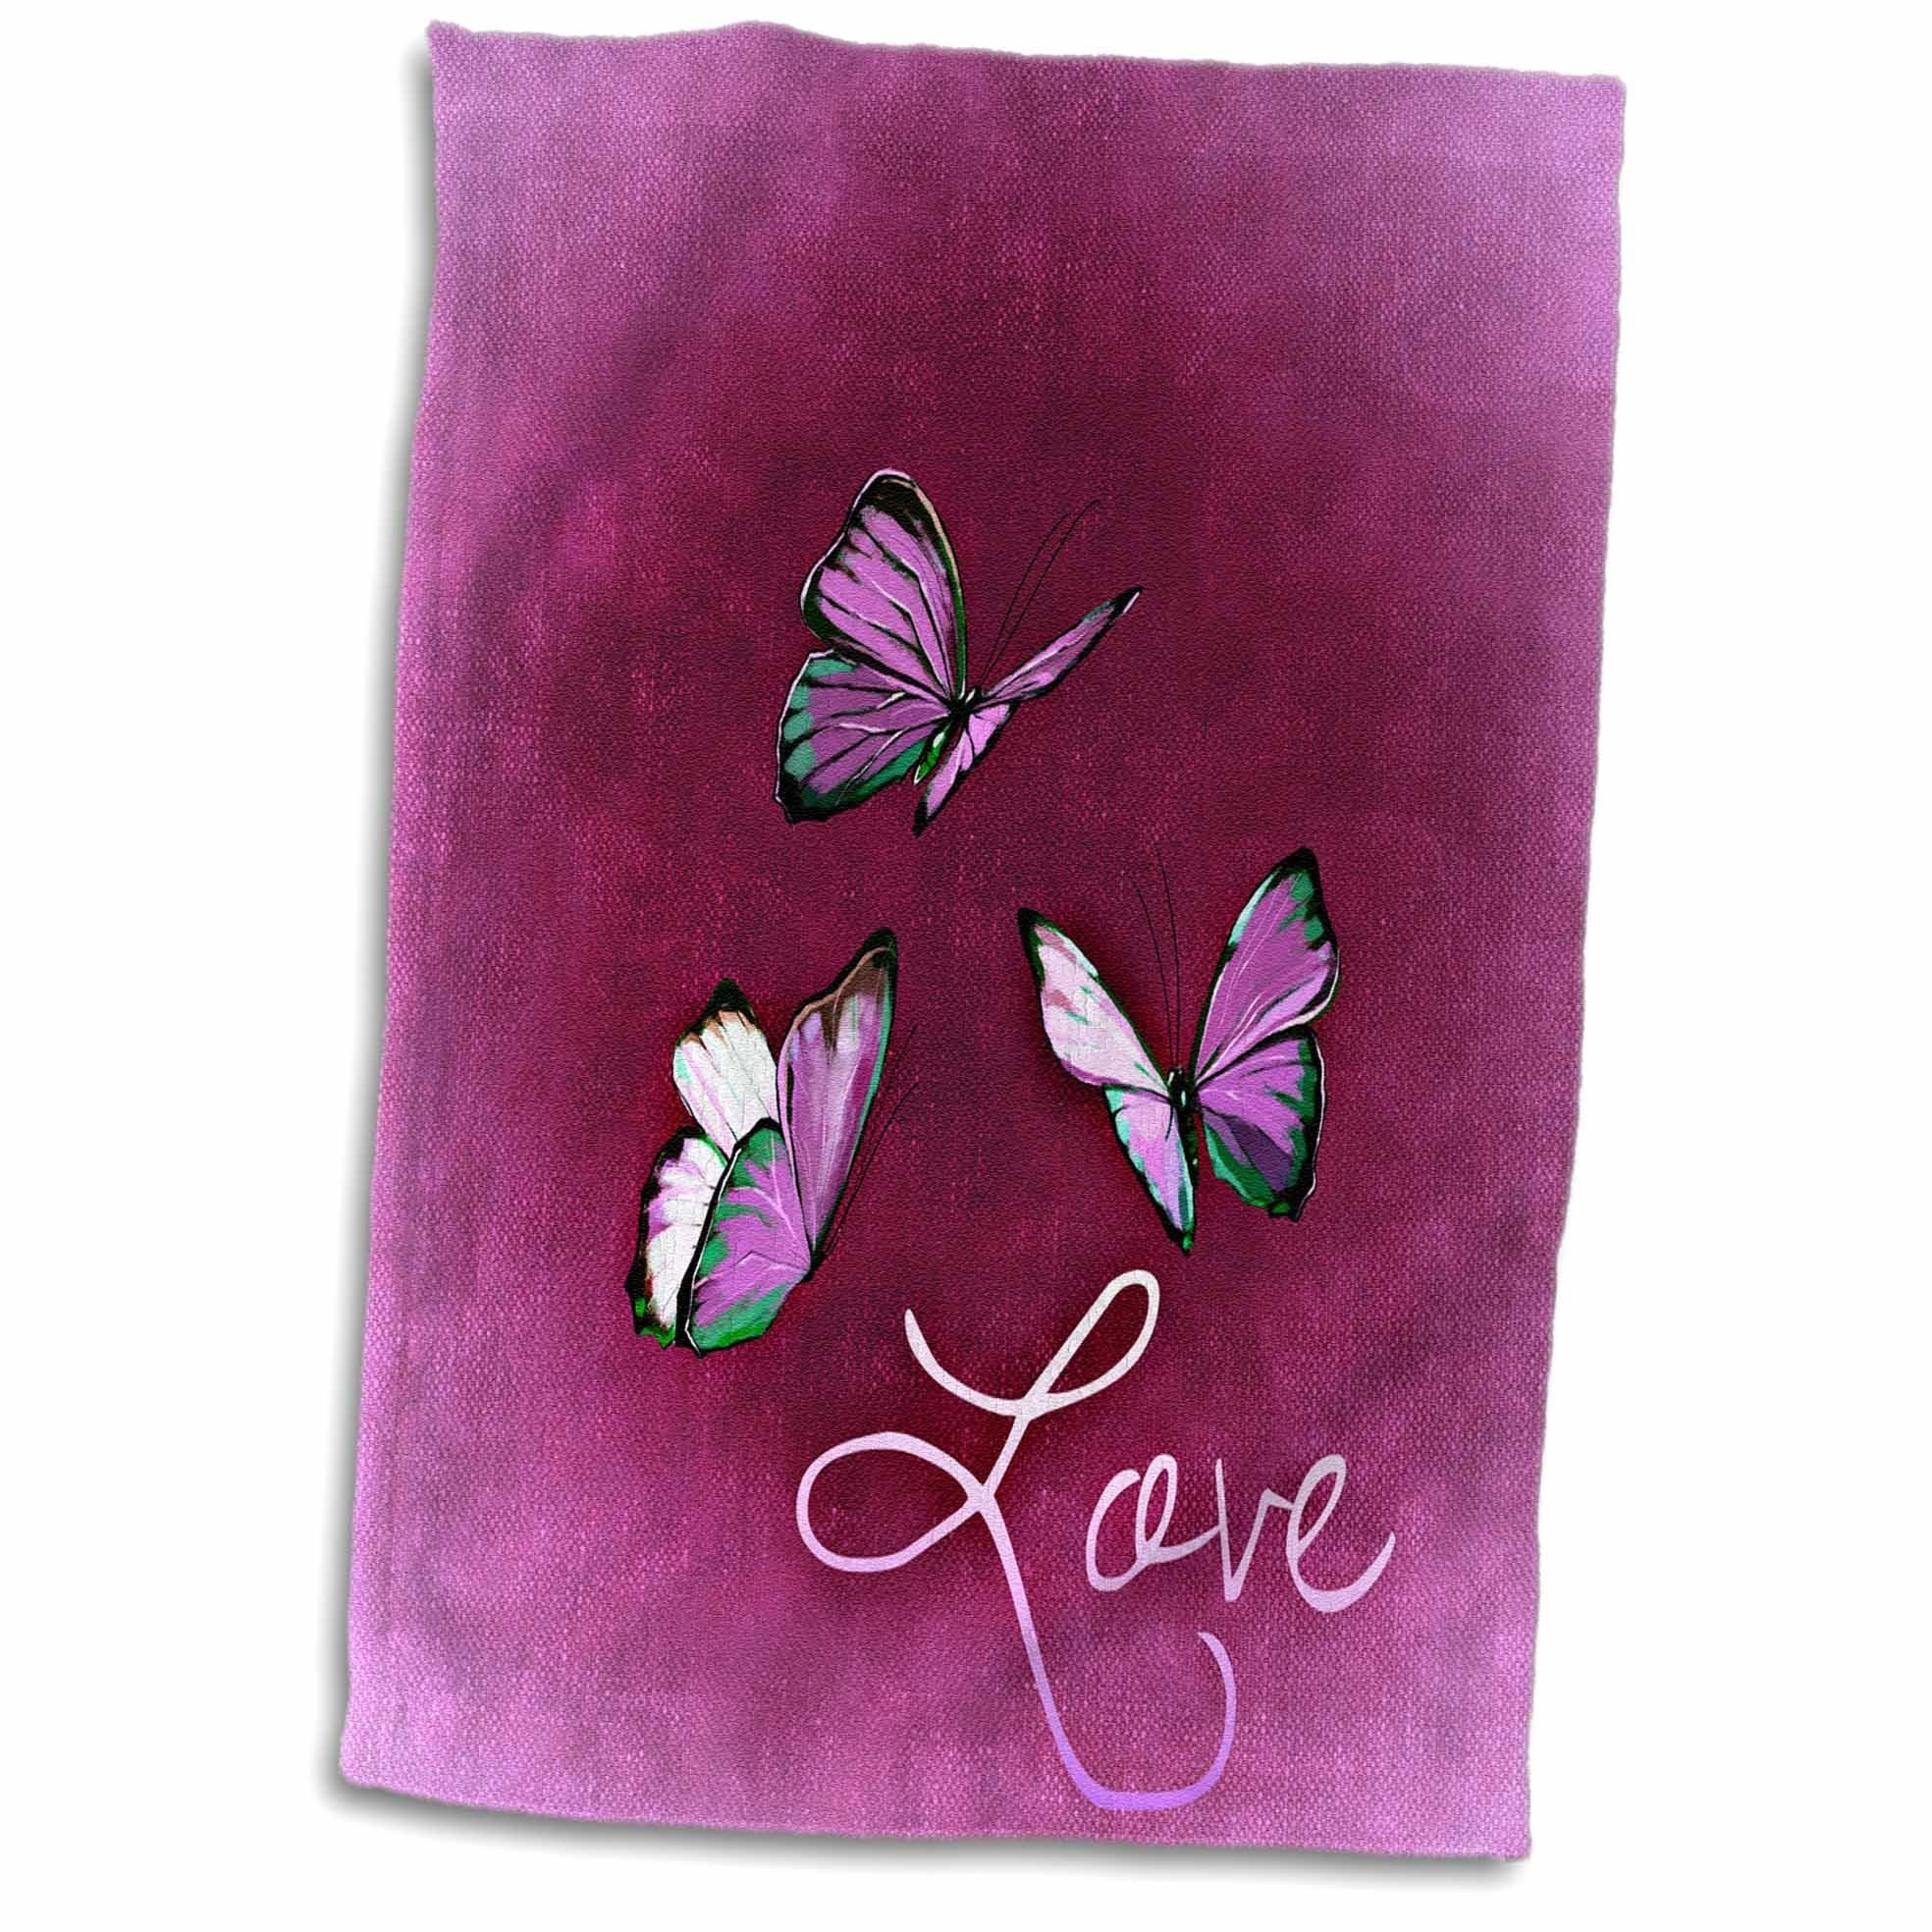 3D Rose Love Style with Butterfly and Pink Background Hand Towel, 15'' x 22'', Multicolor